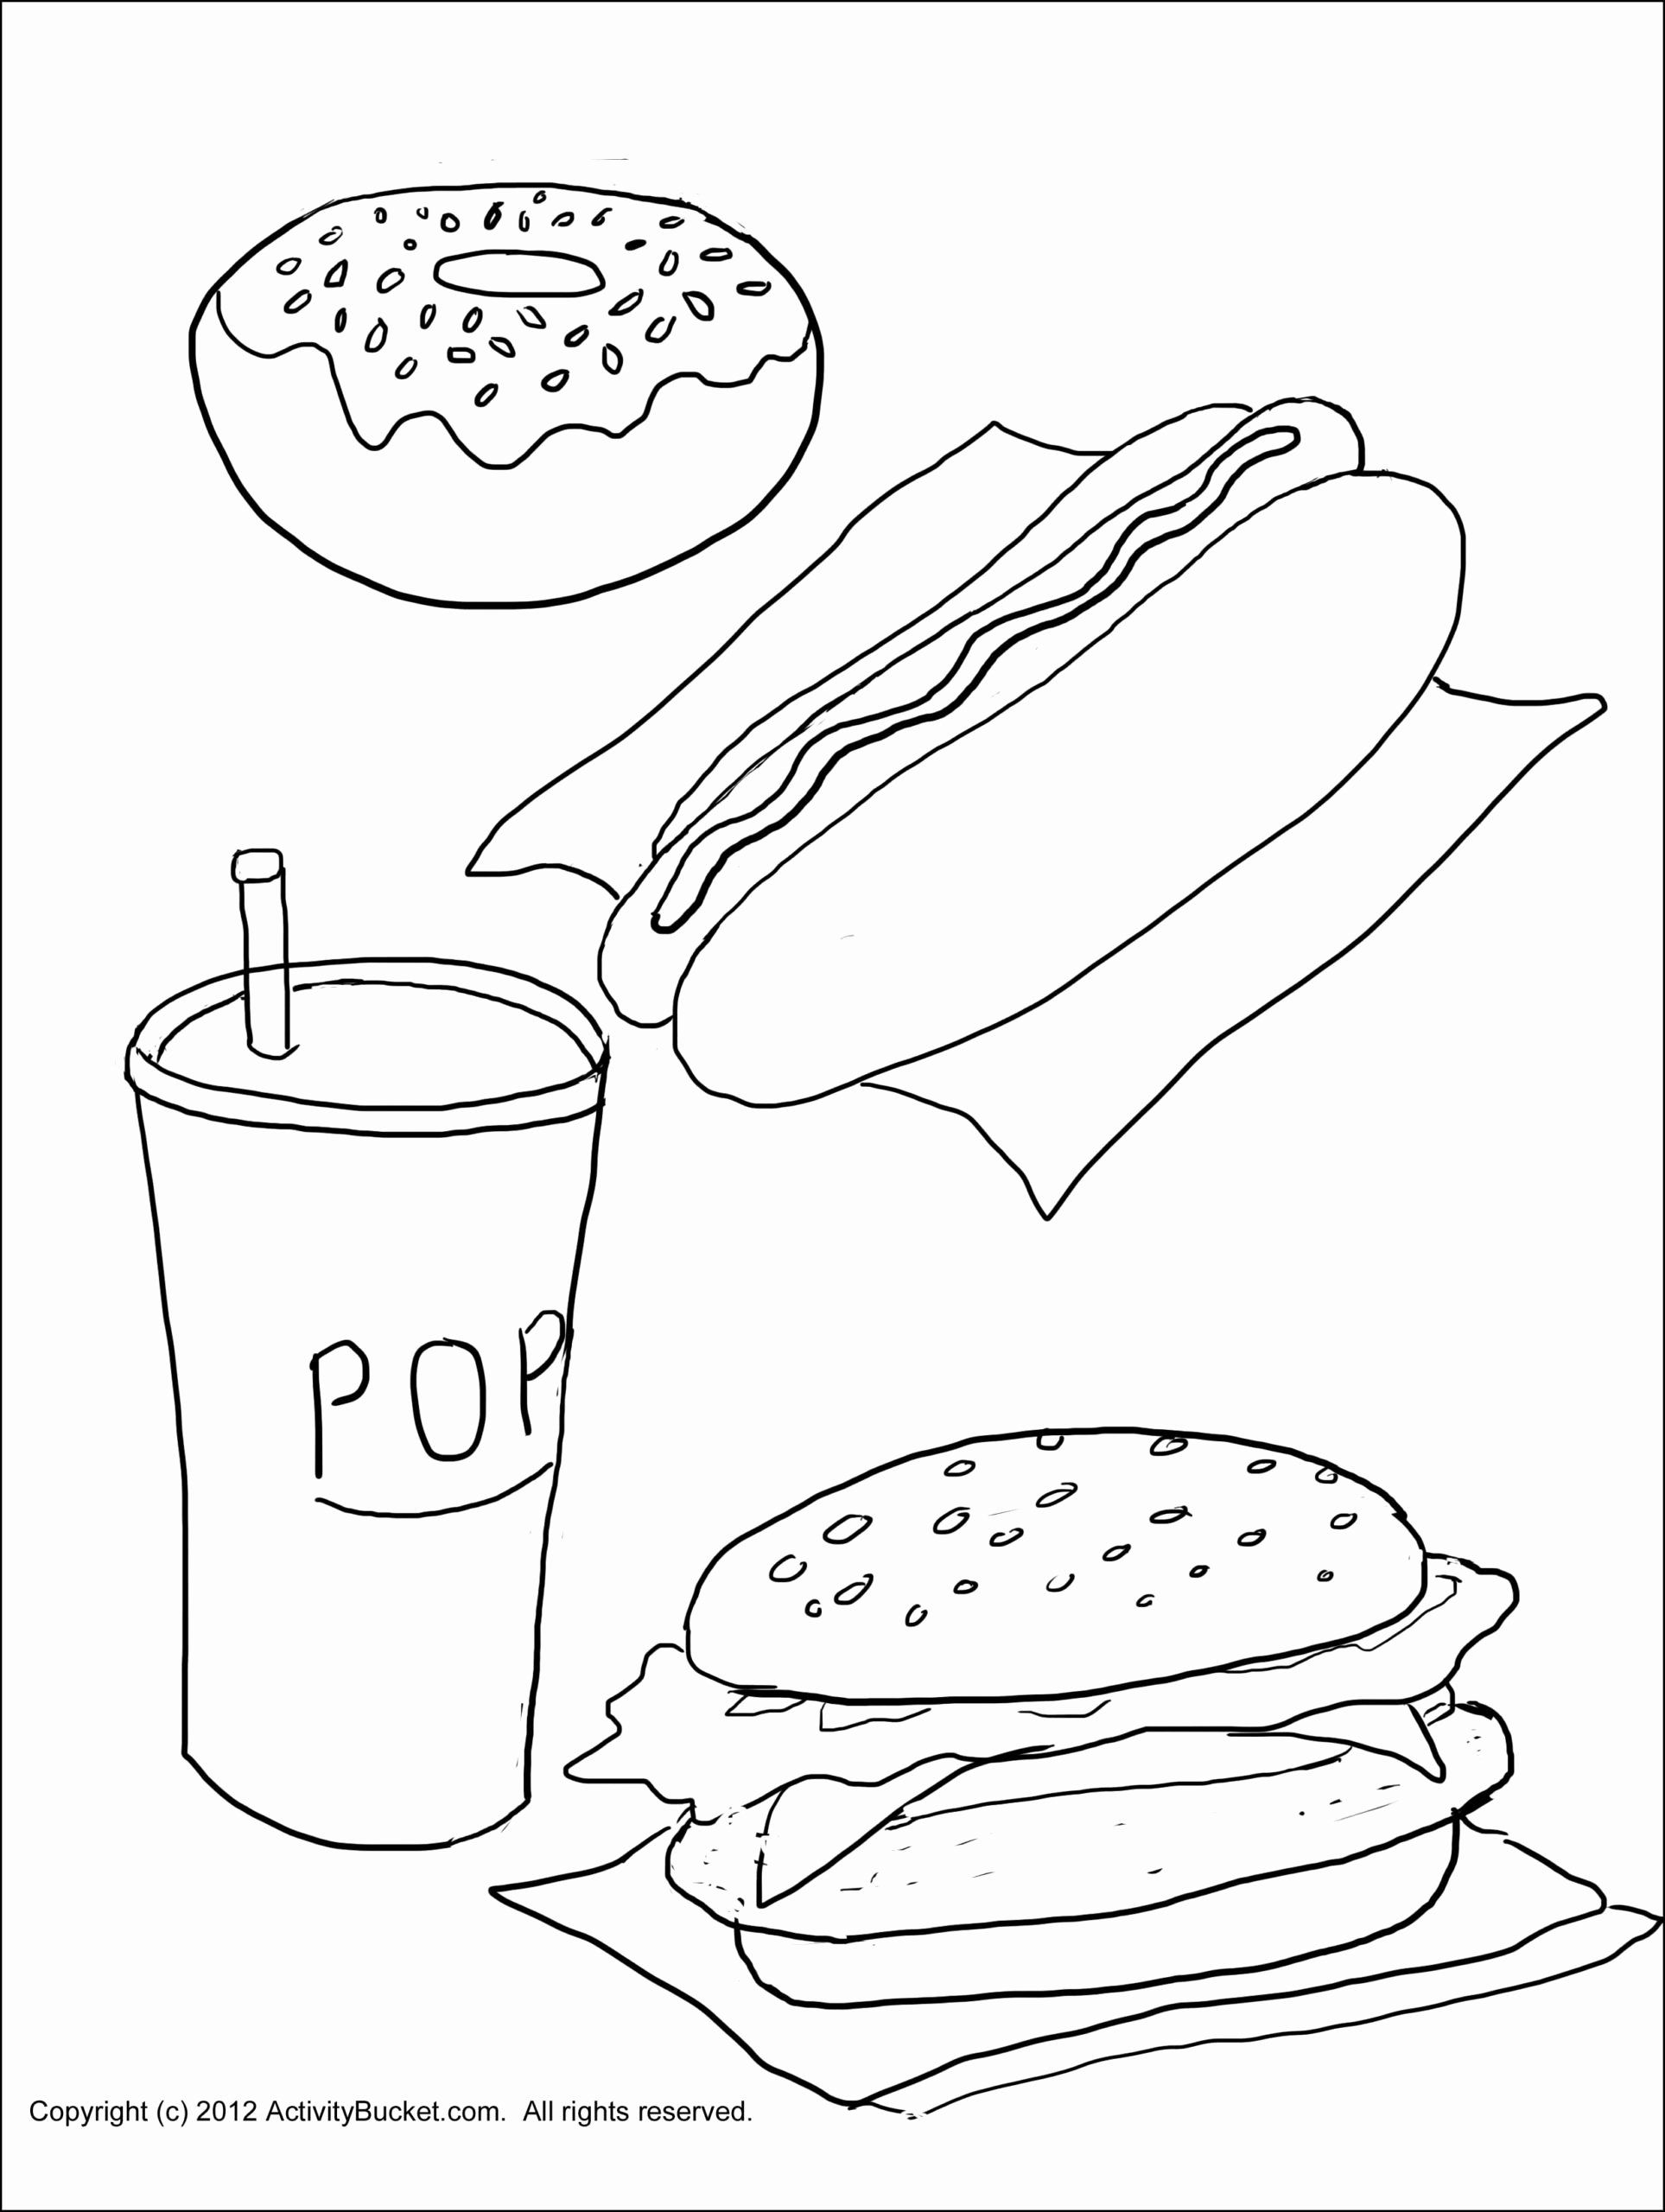 Healthy And Unhealthy Food Worksheets For Kids Fresh Healthy And Unhealthy Food Worksheet For Presch Food Coloring Pages Coloring Pages For Kids Coloring Pages [ 2560 x 1927 Pixel ]